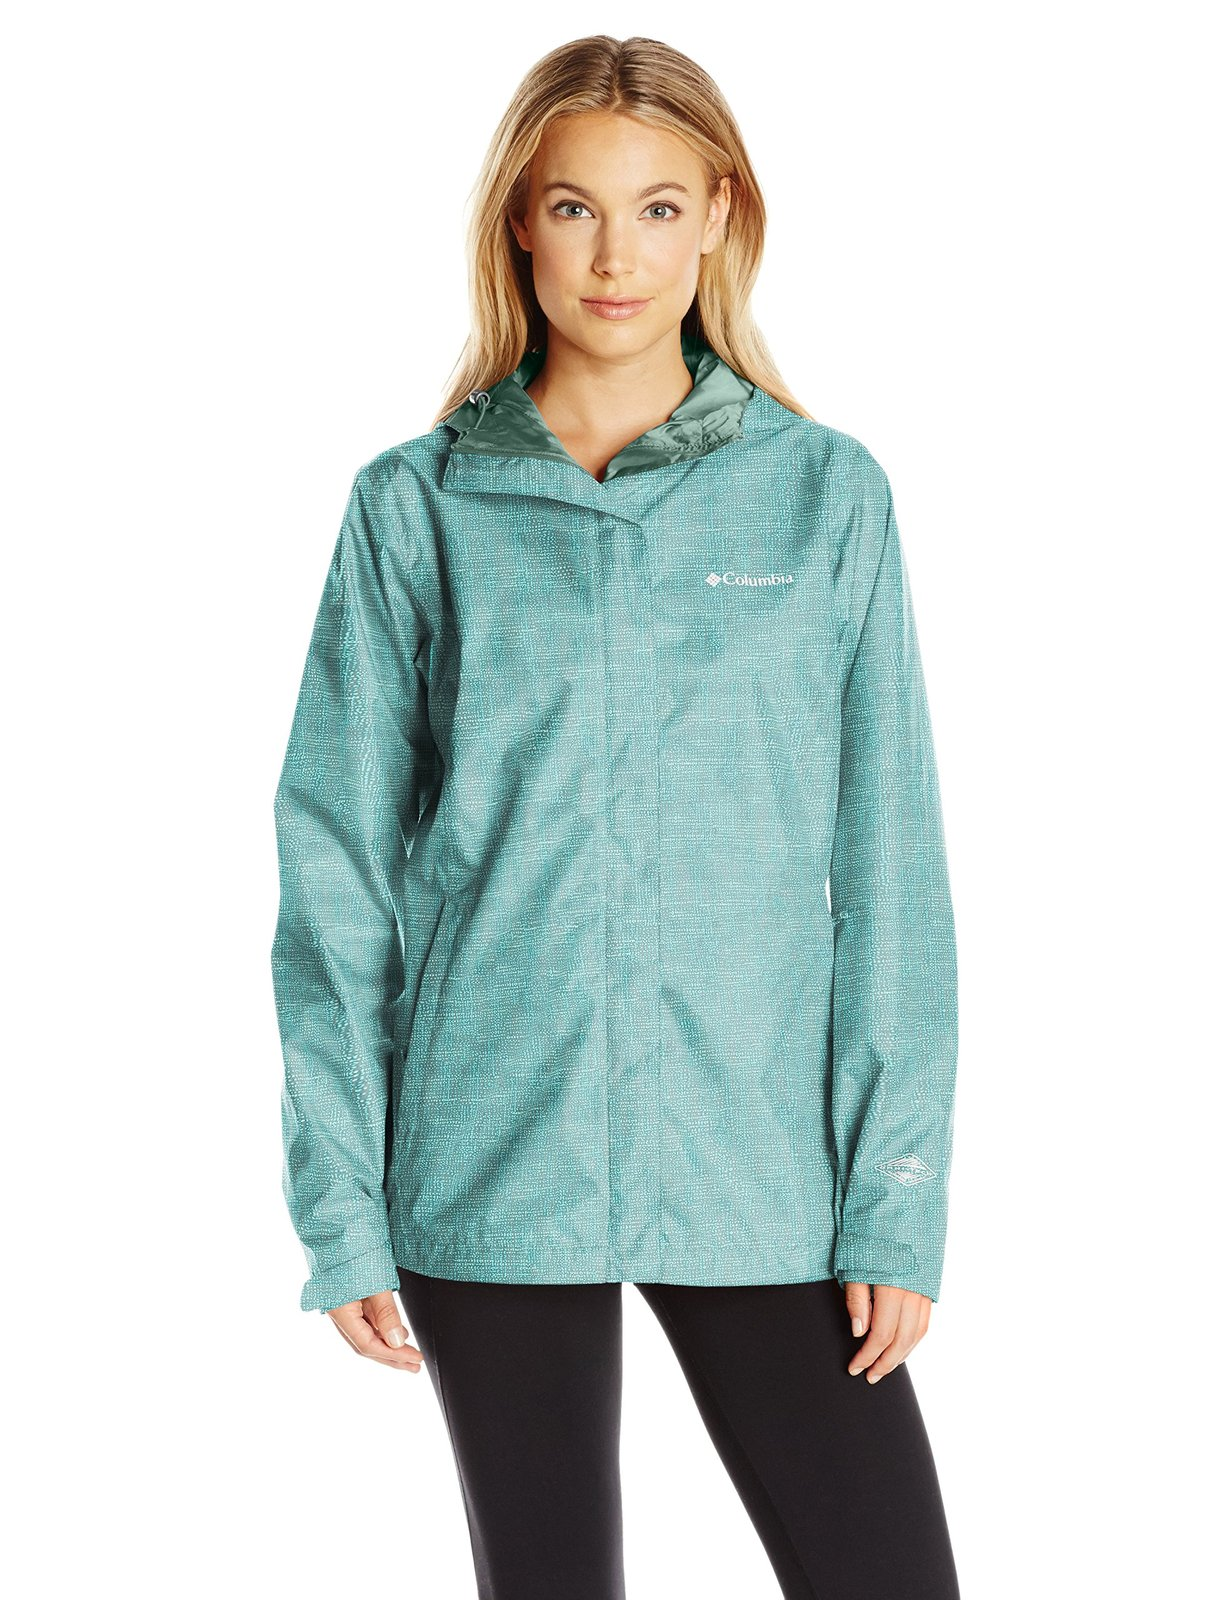 Columbia Women's Arcadia Print Jacket, Pond/Dotty Dye, Large